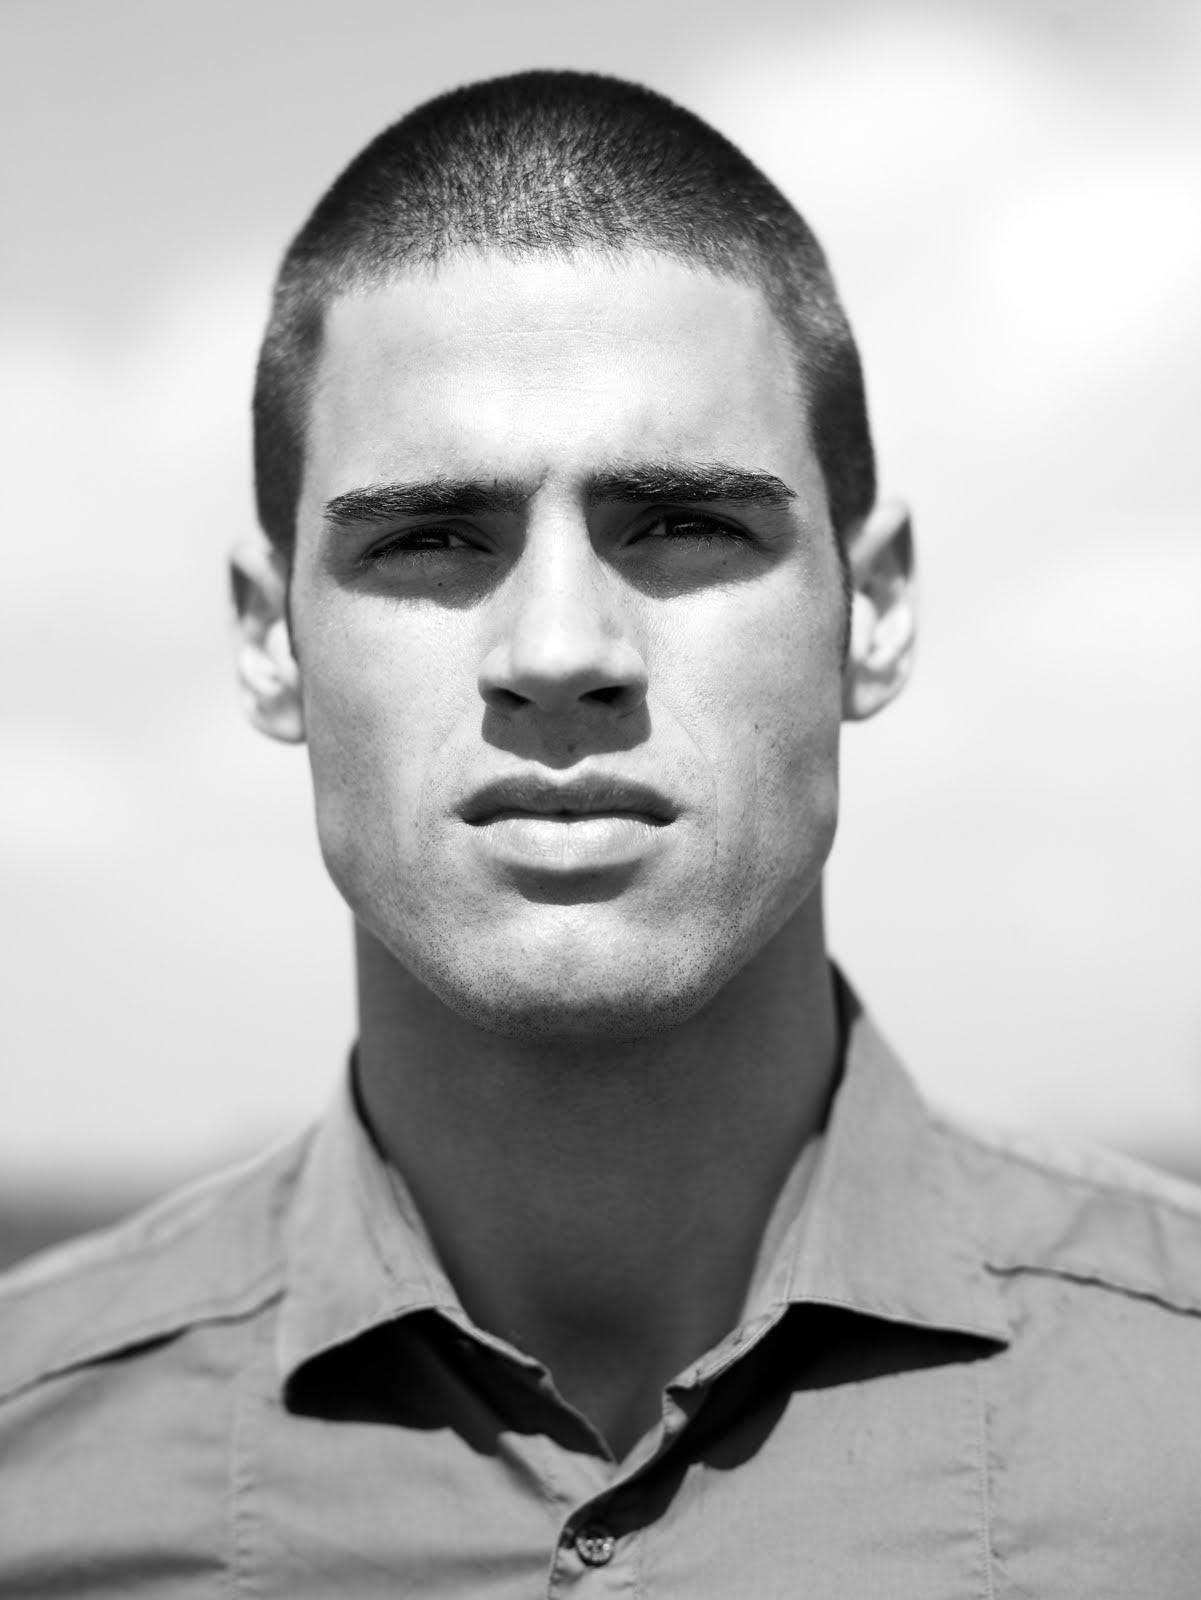 Male Beauty Photos: American Male Model - Chad White.